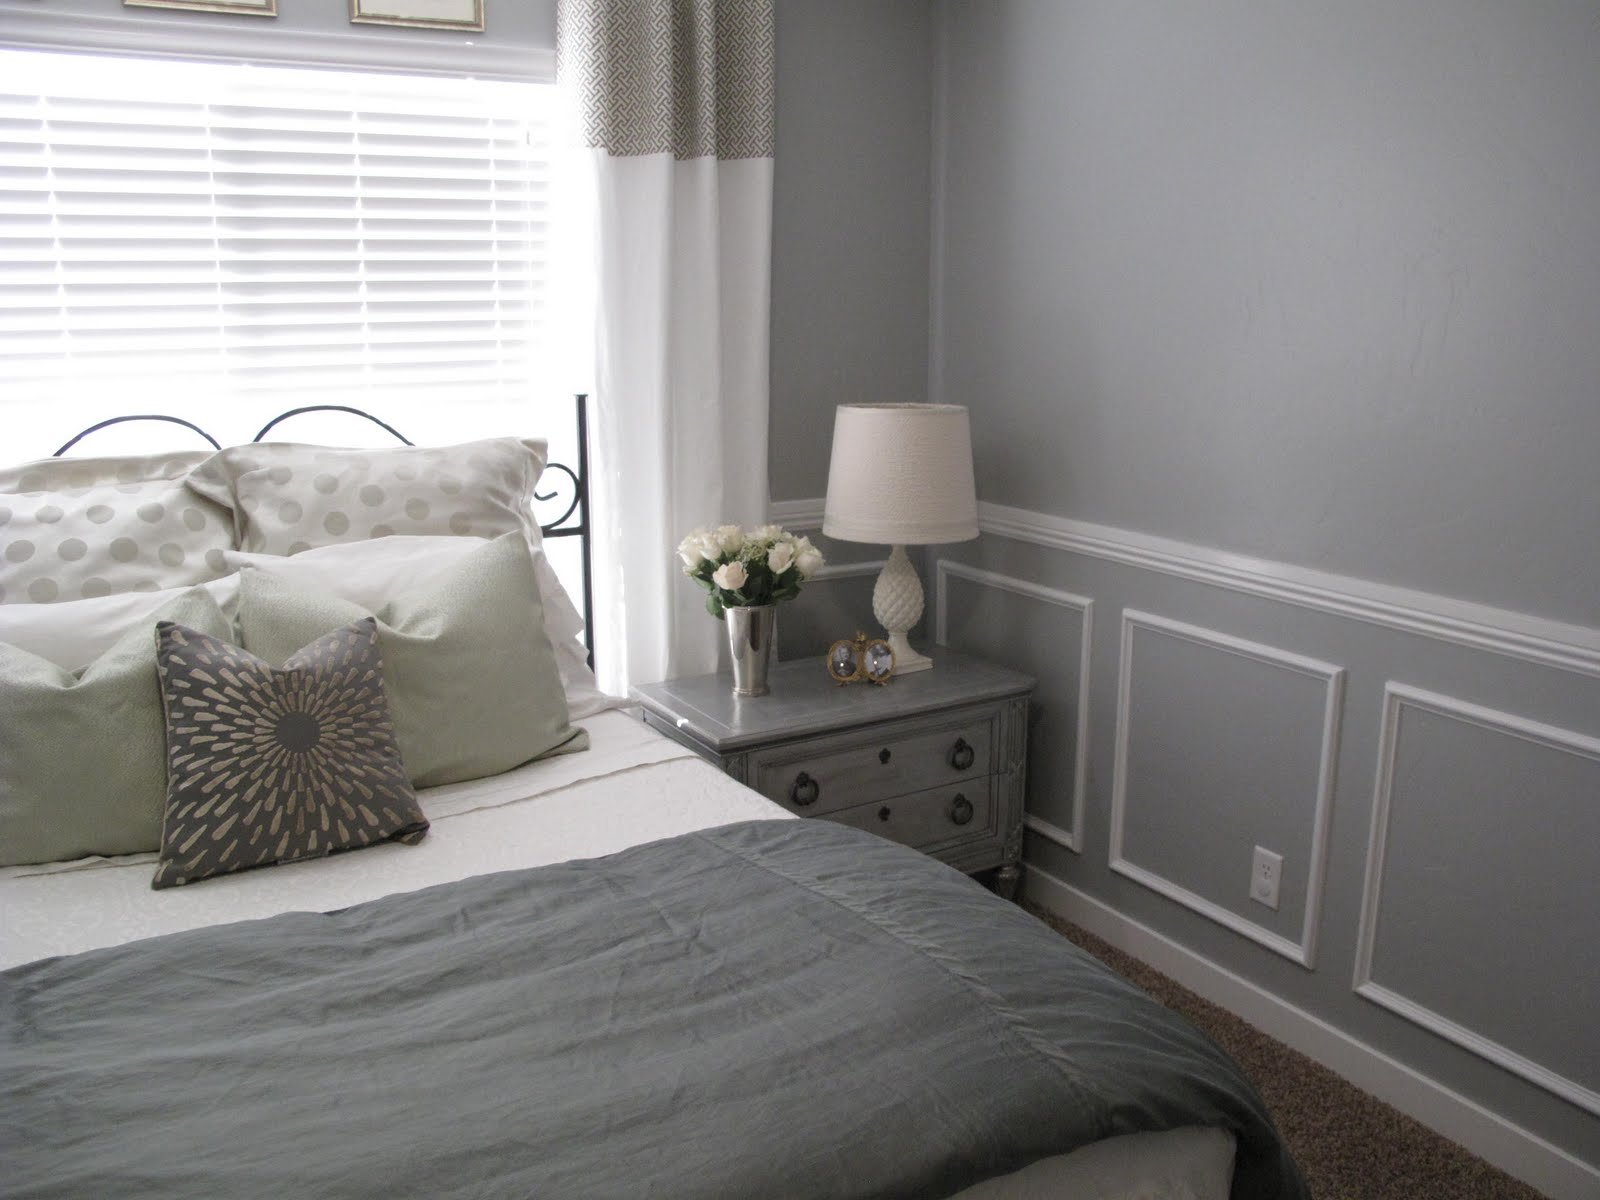 little miss penny wenny master bedroom makeover reveal 15464 | img 4454 jpg